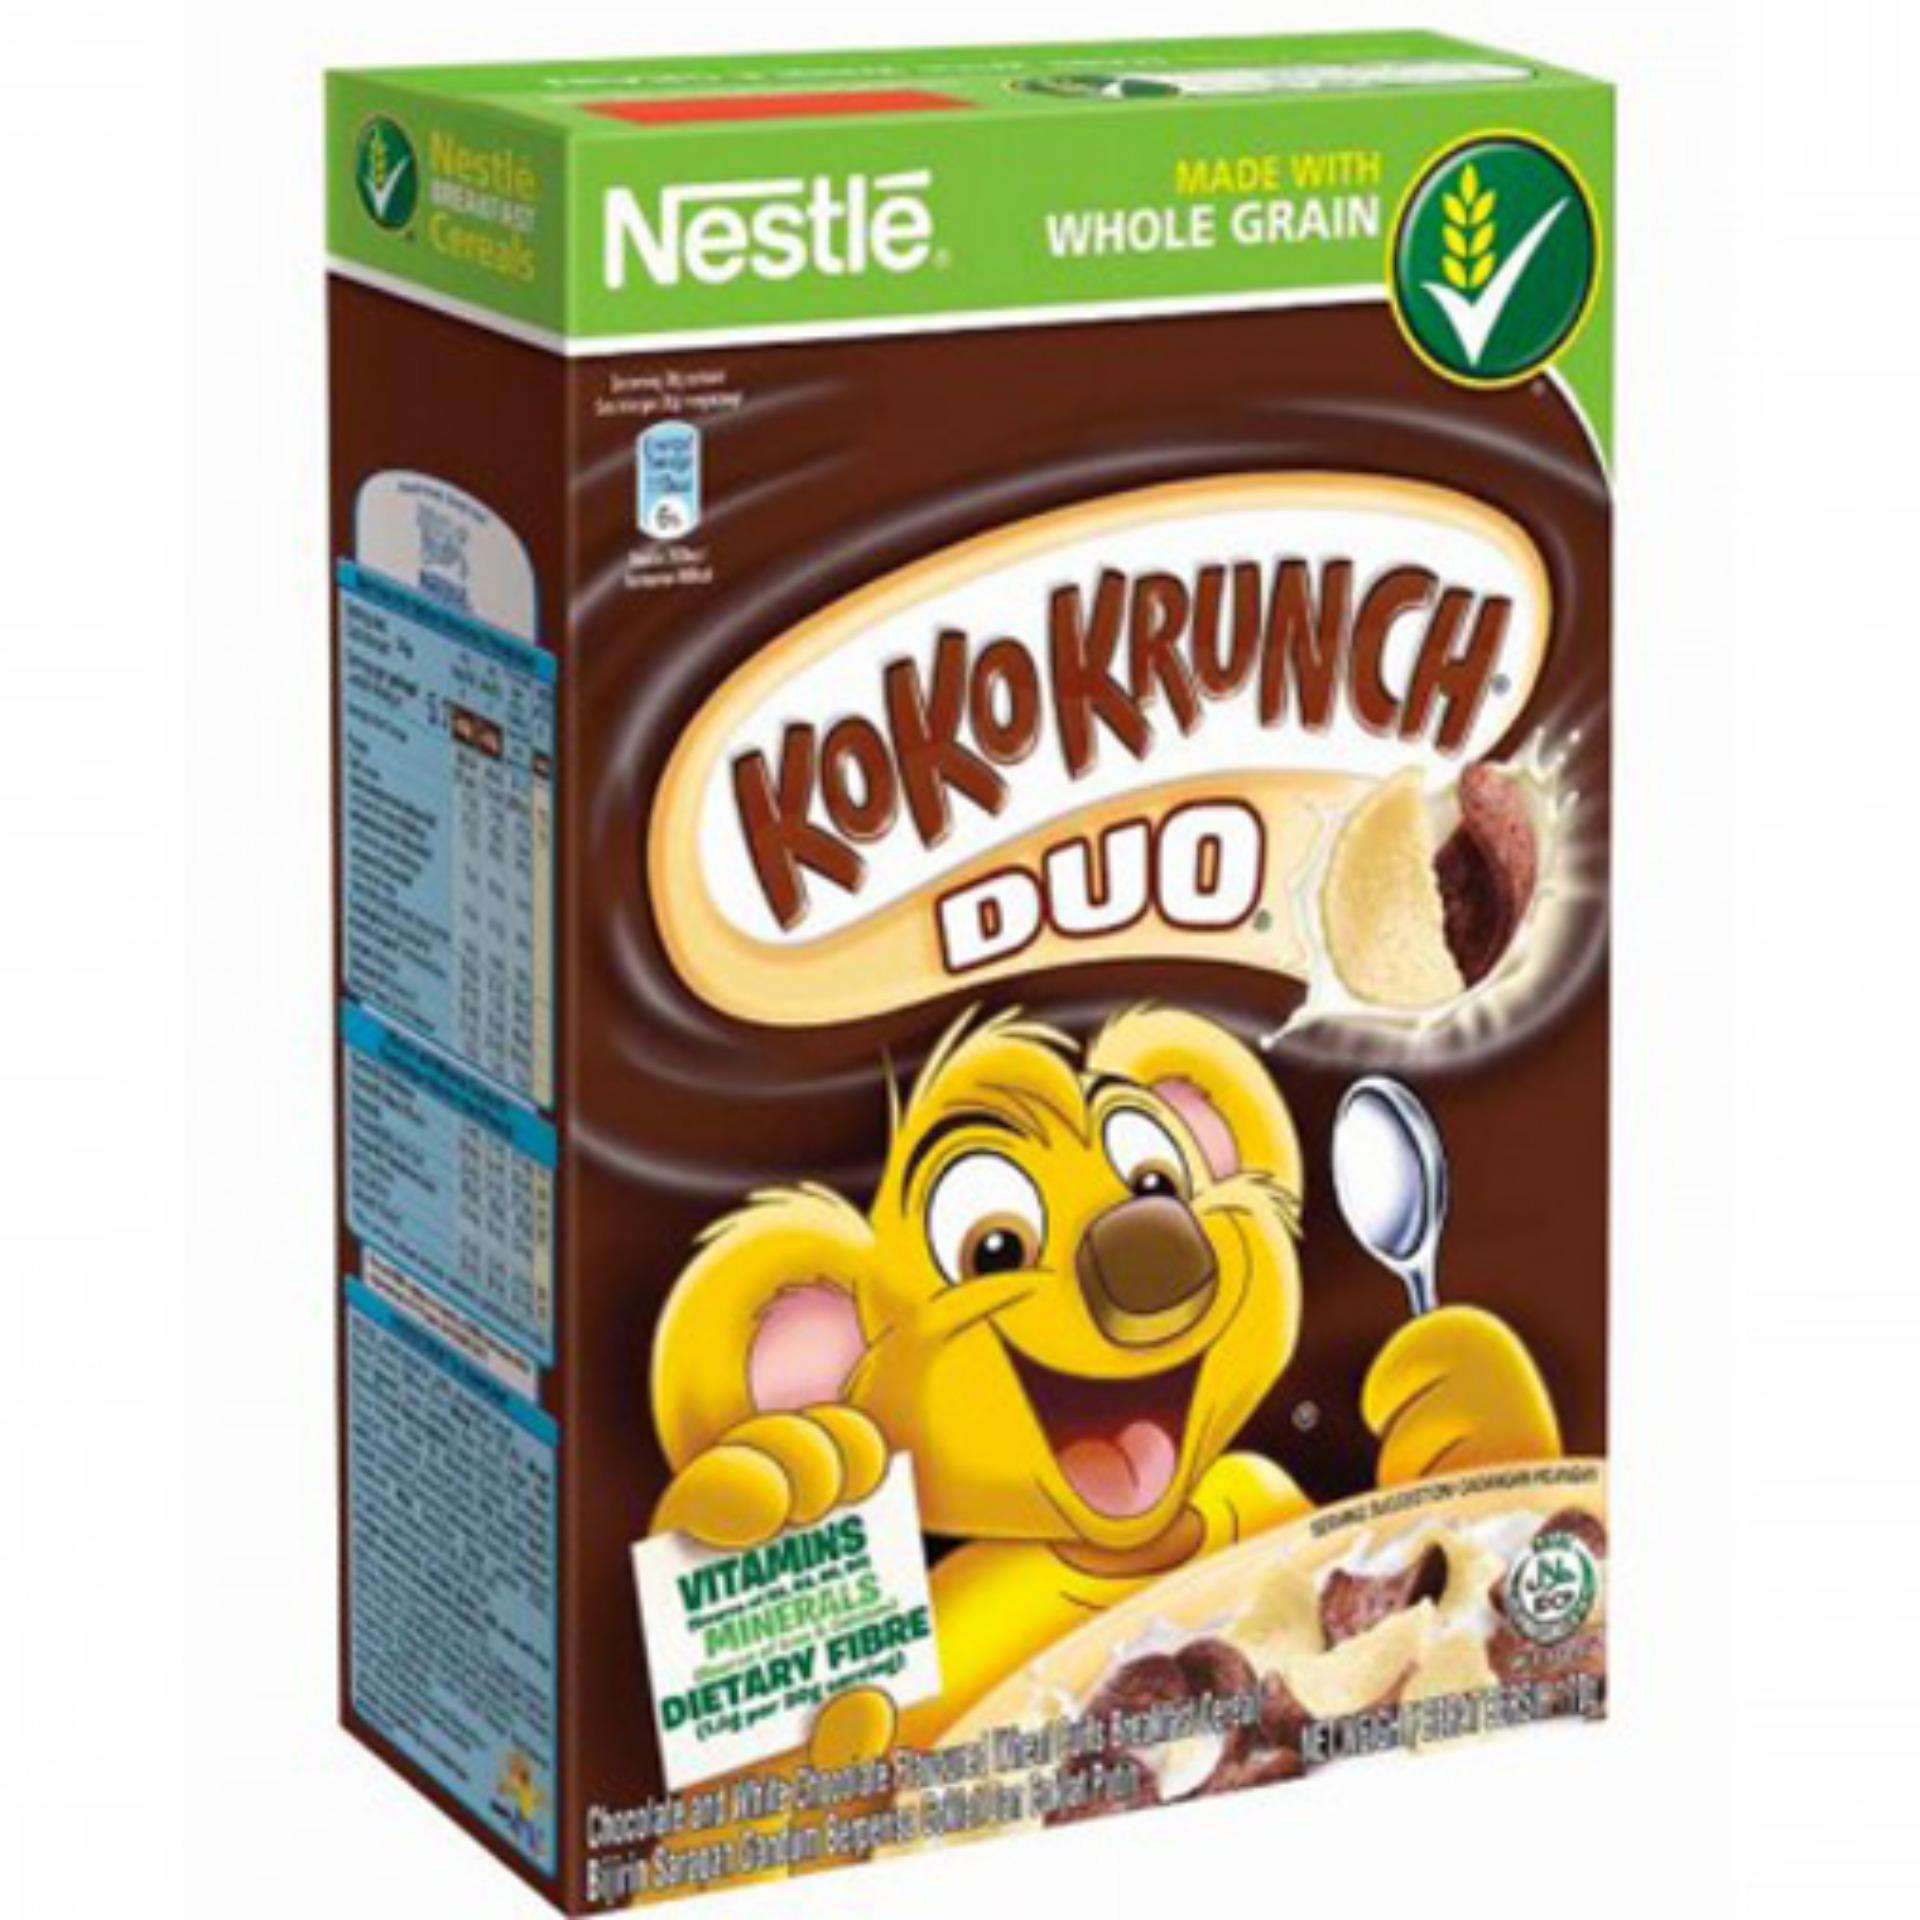 Koko krunch philippines koko krunch price list breakfast cereal koko krunch duo 330g ccuart Choice Image